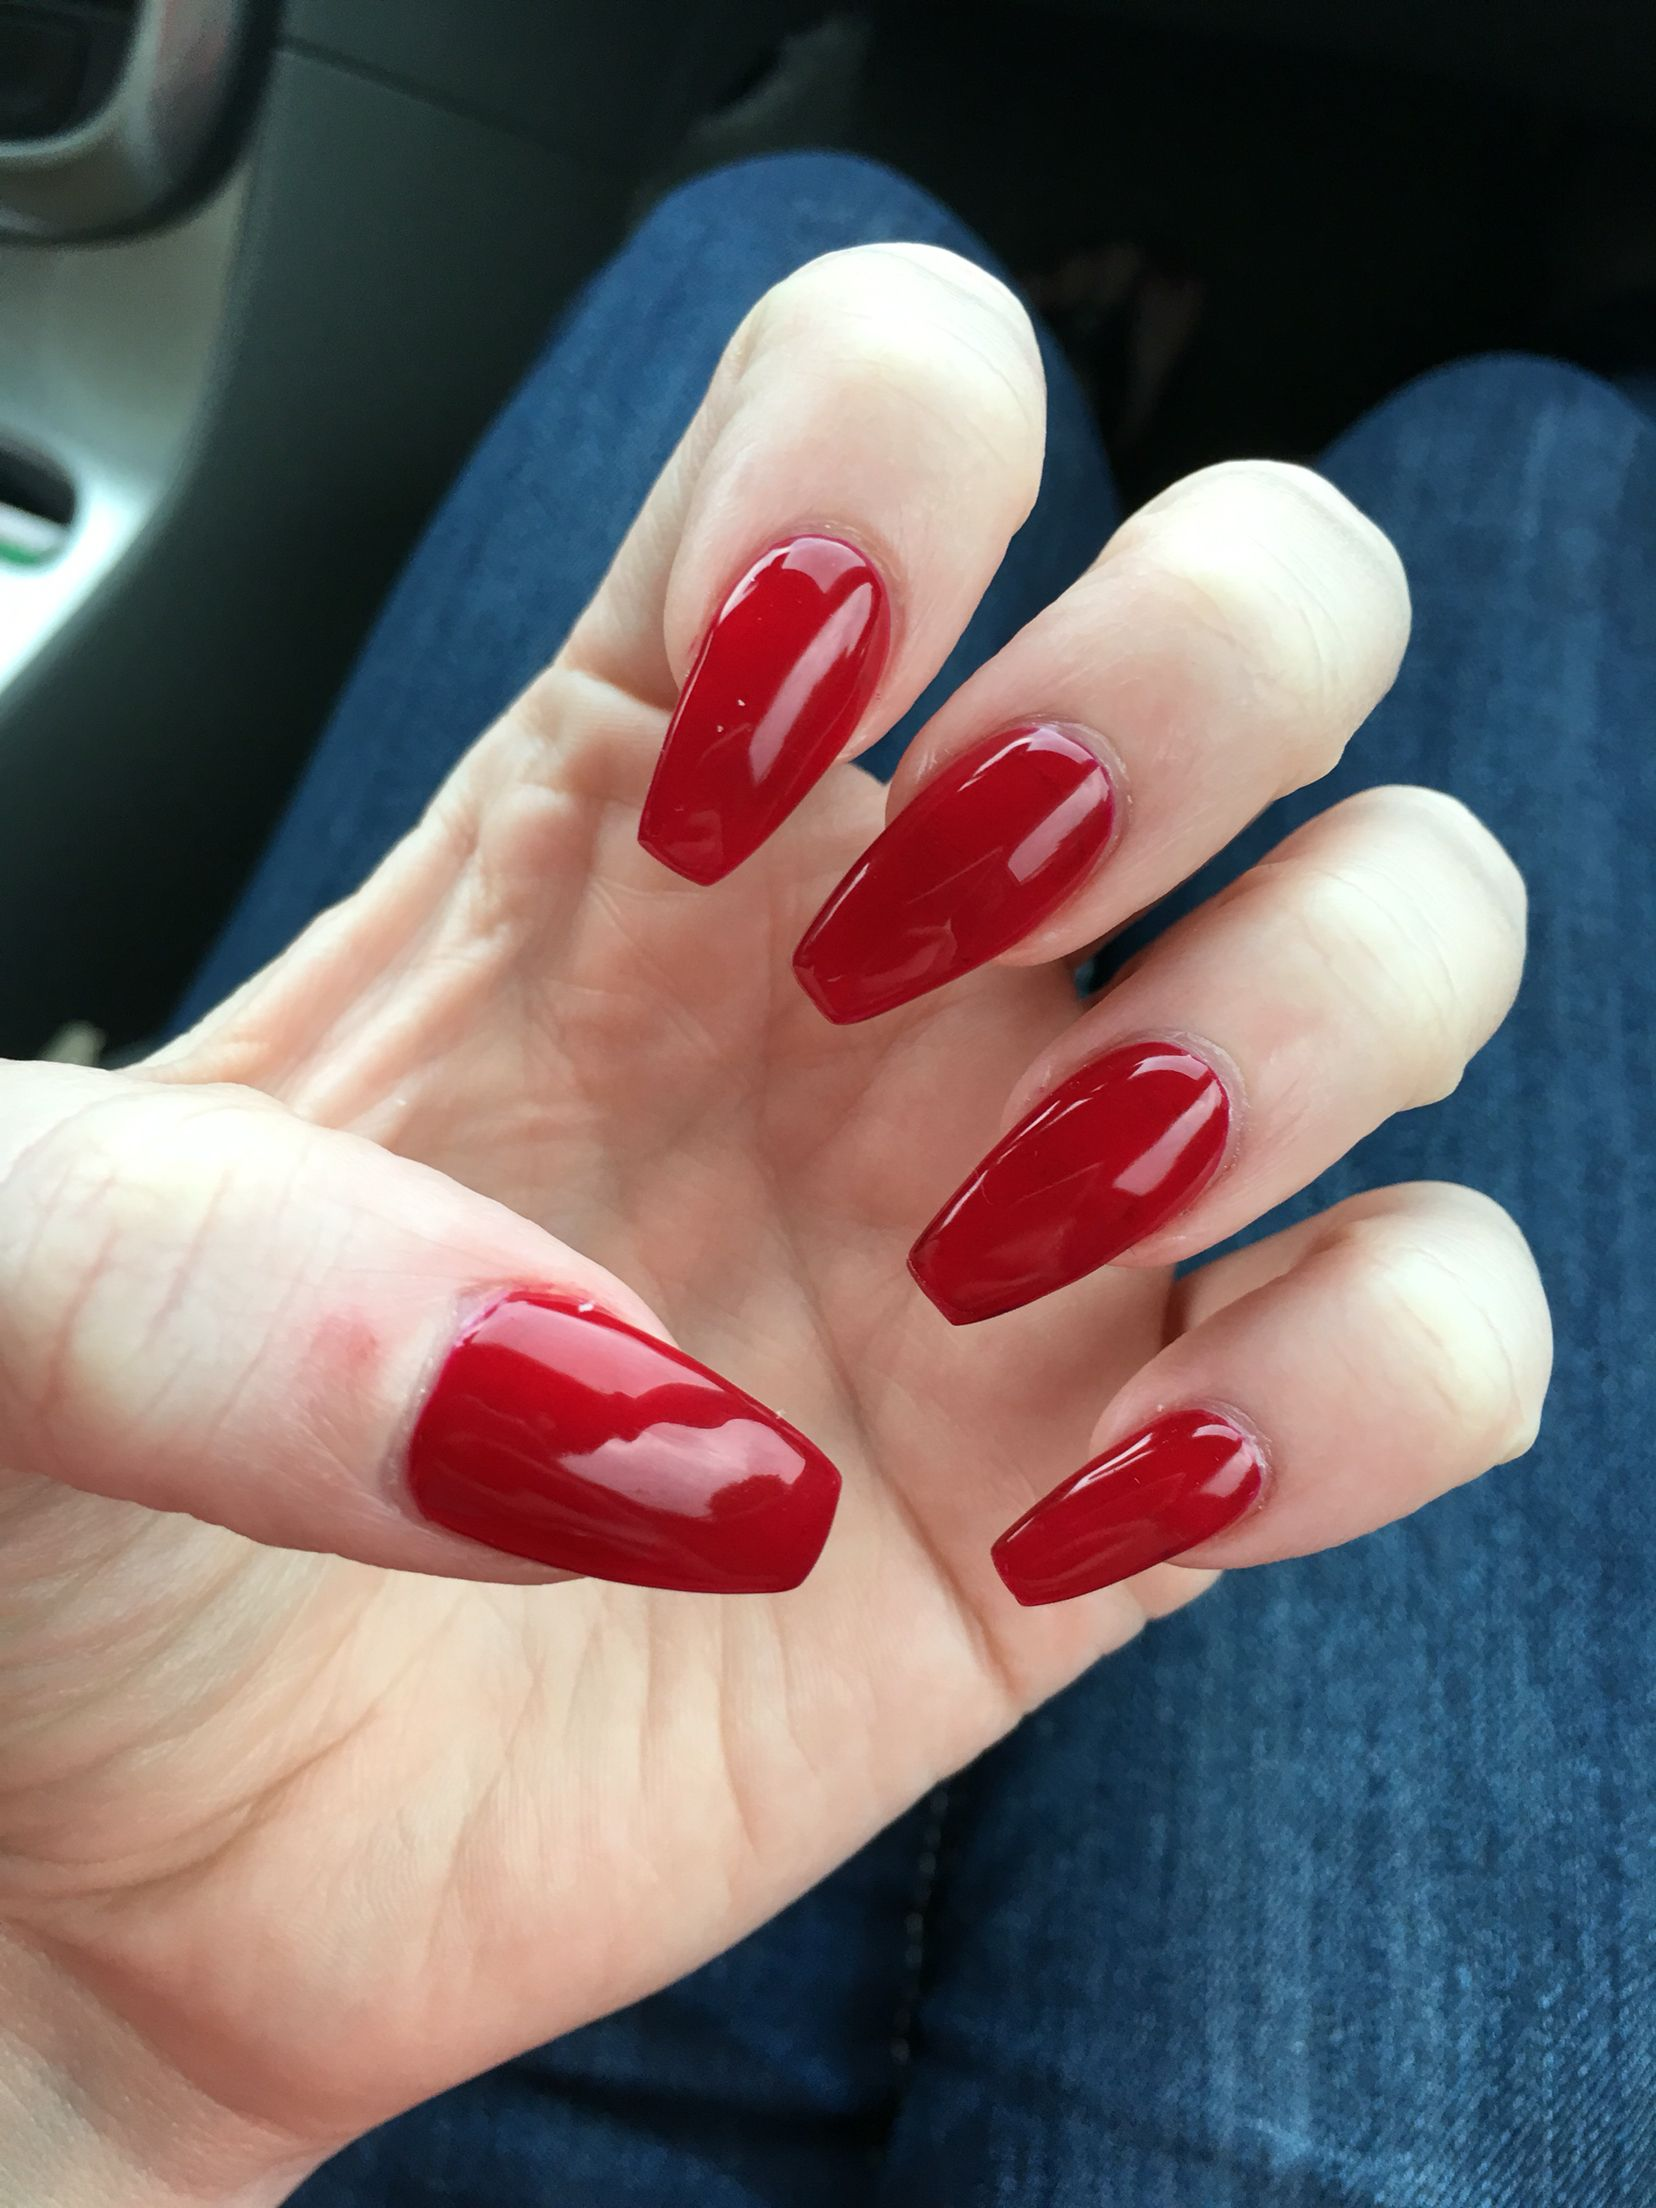 Red Coffin Nails #Nails #Gel-nails #Coffin-shaped | Awe | Pinterest ...